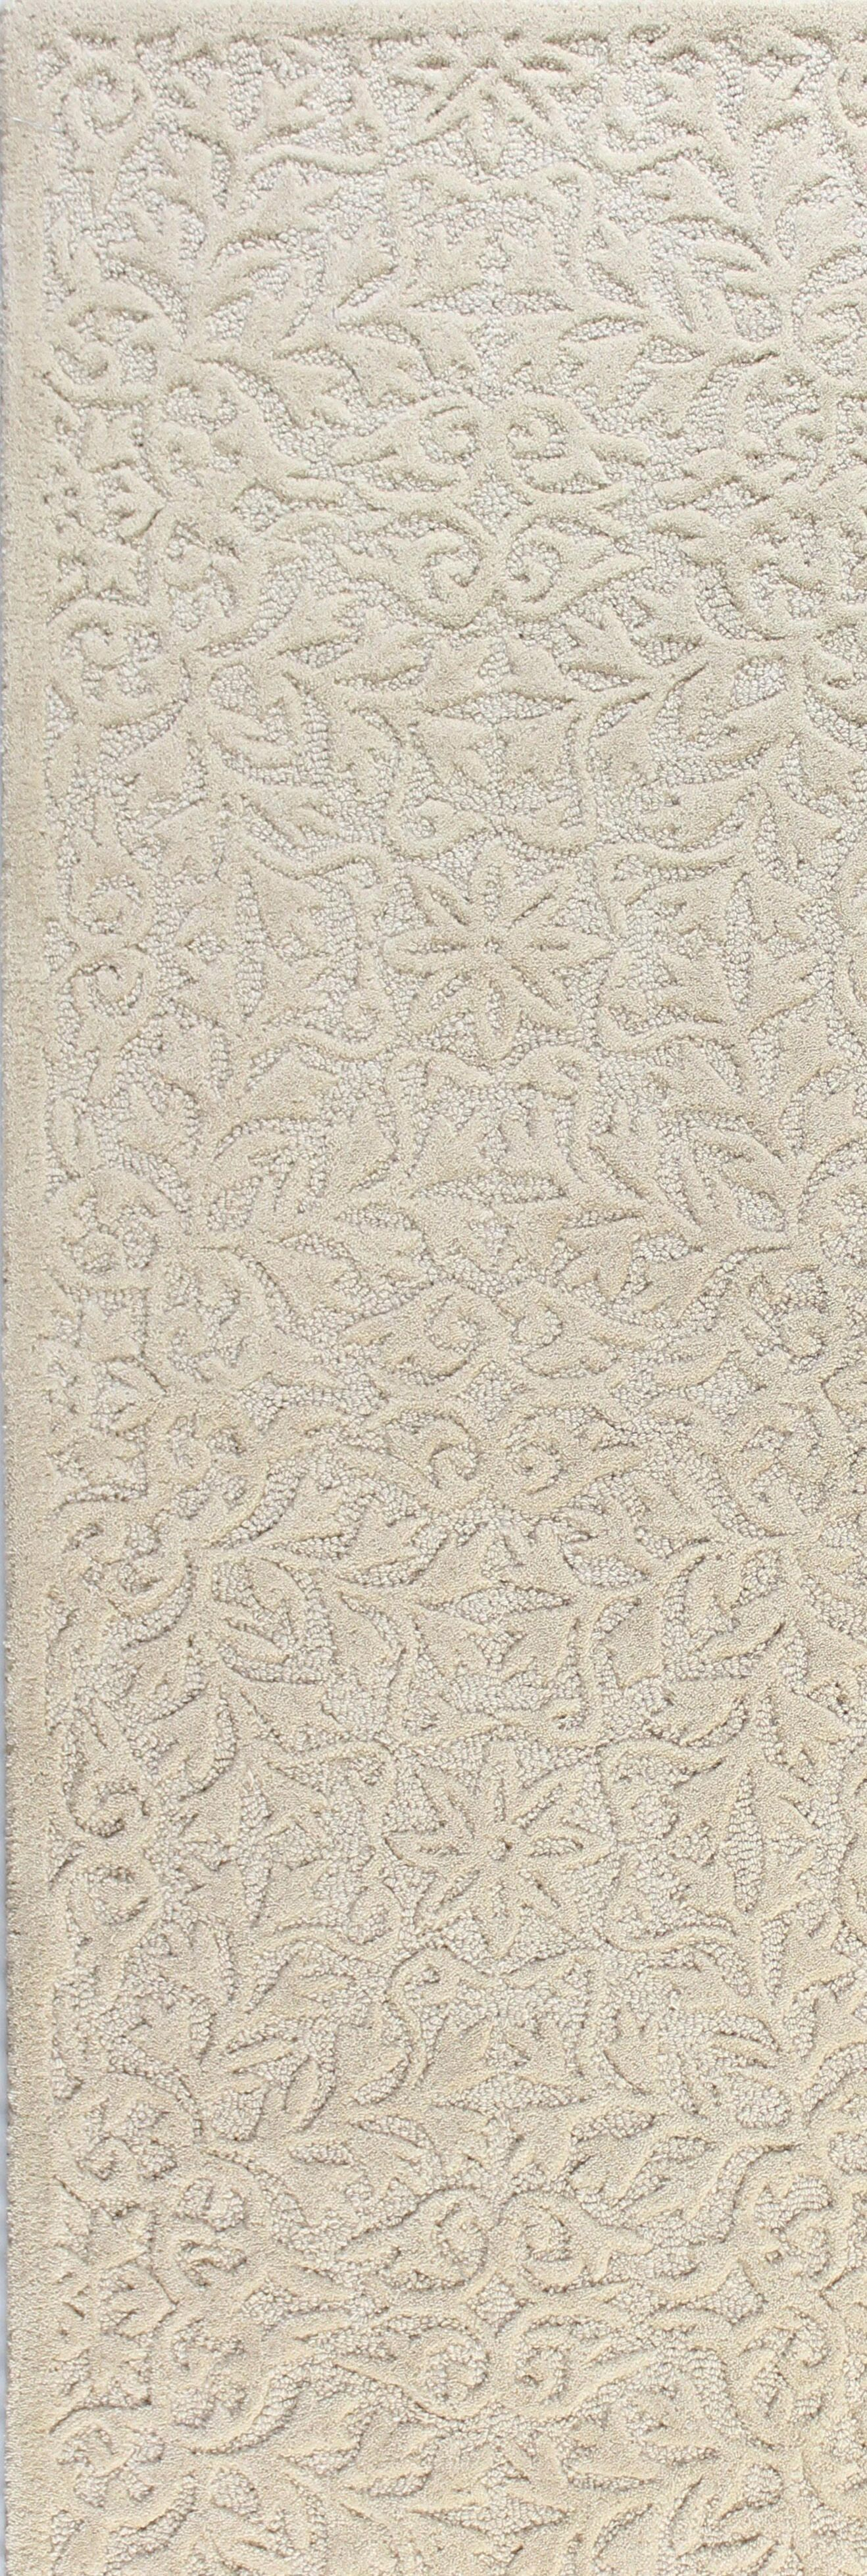 Naomi Tufted Wool Area Rug Rug Size: Runner 2'6